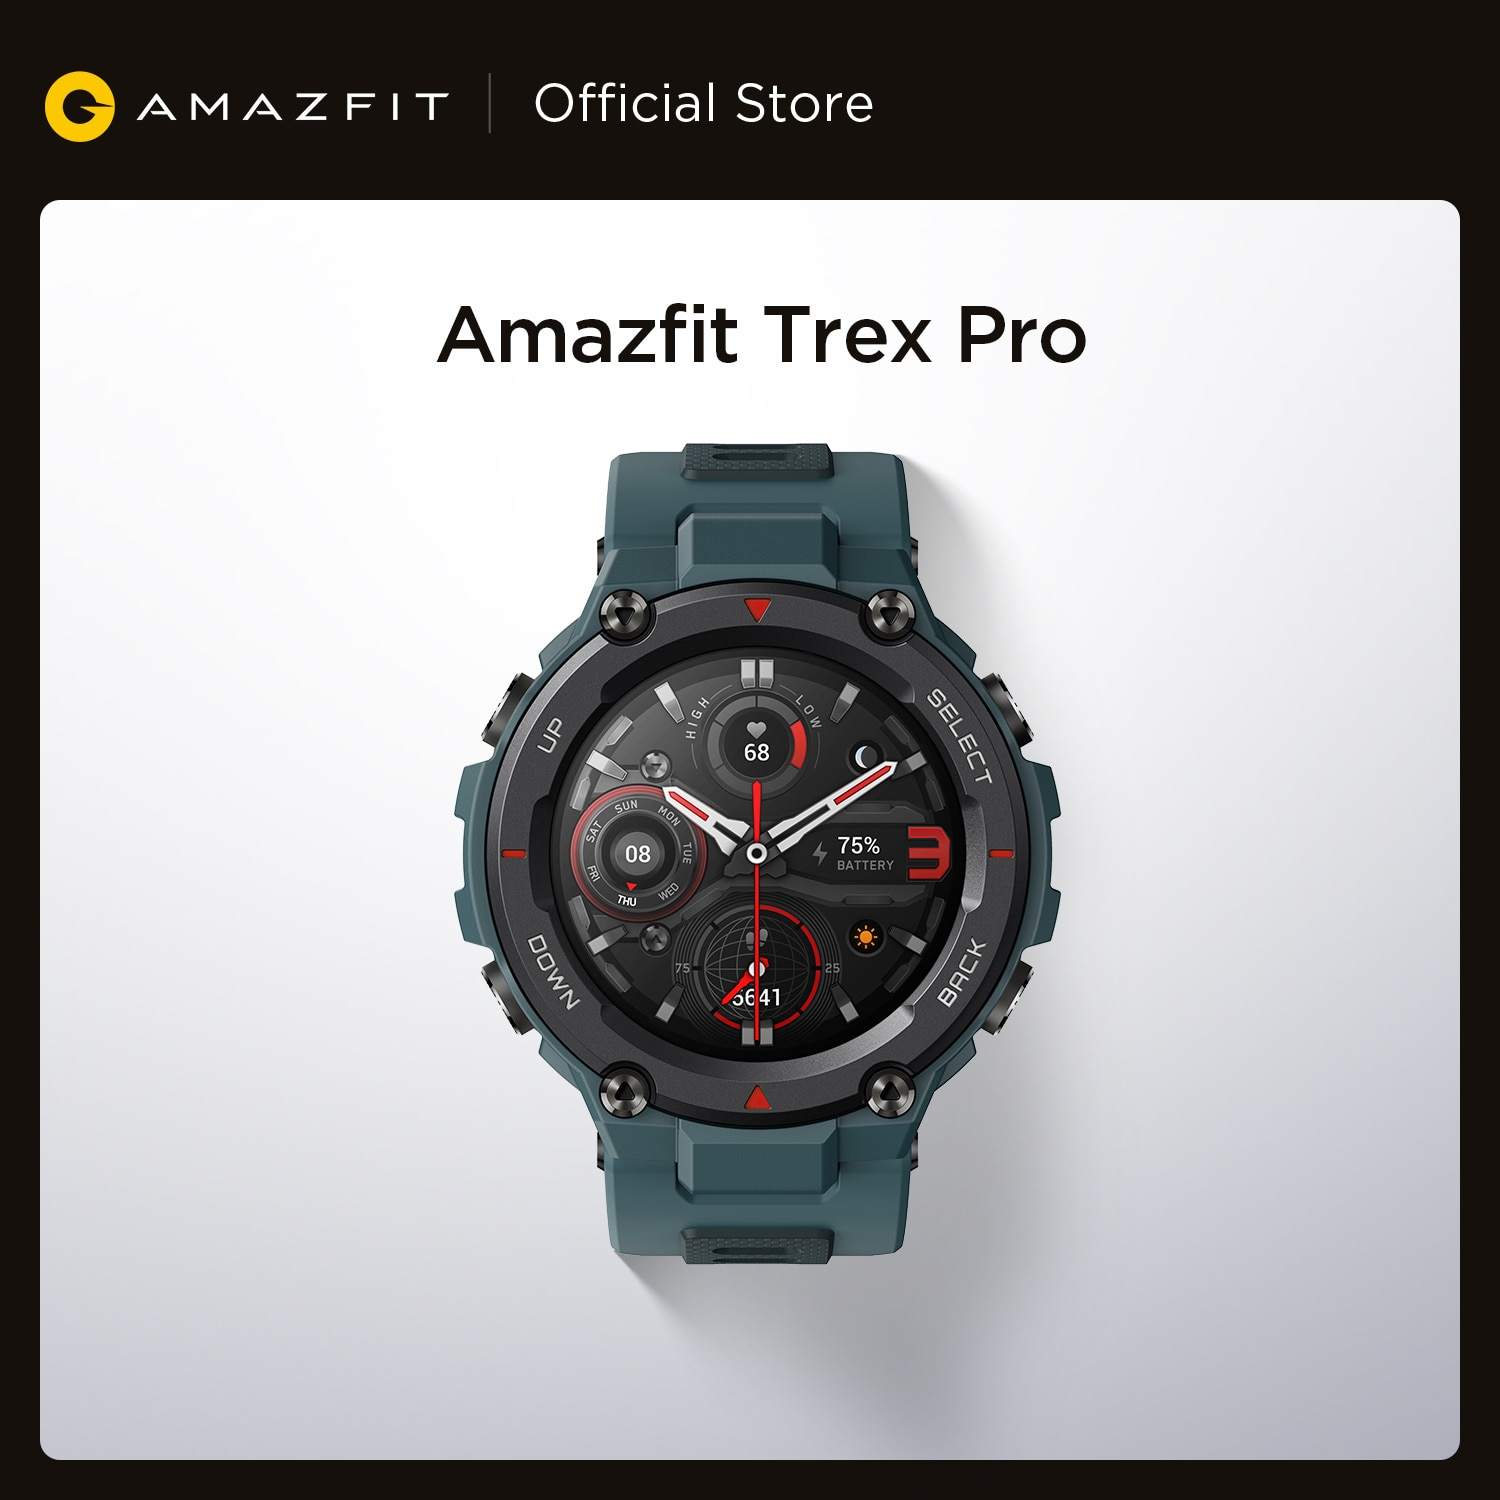 Review 2021 Amazfit Trex Pro Smartwatch 10 ATM Waterproof 18-day Battery Life 390mAh 100 Sport Modes Smart Watch For Android iOS Phone